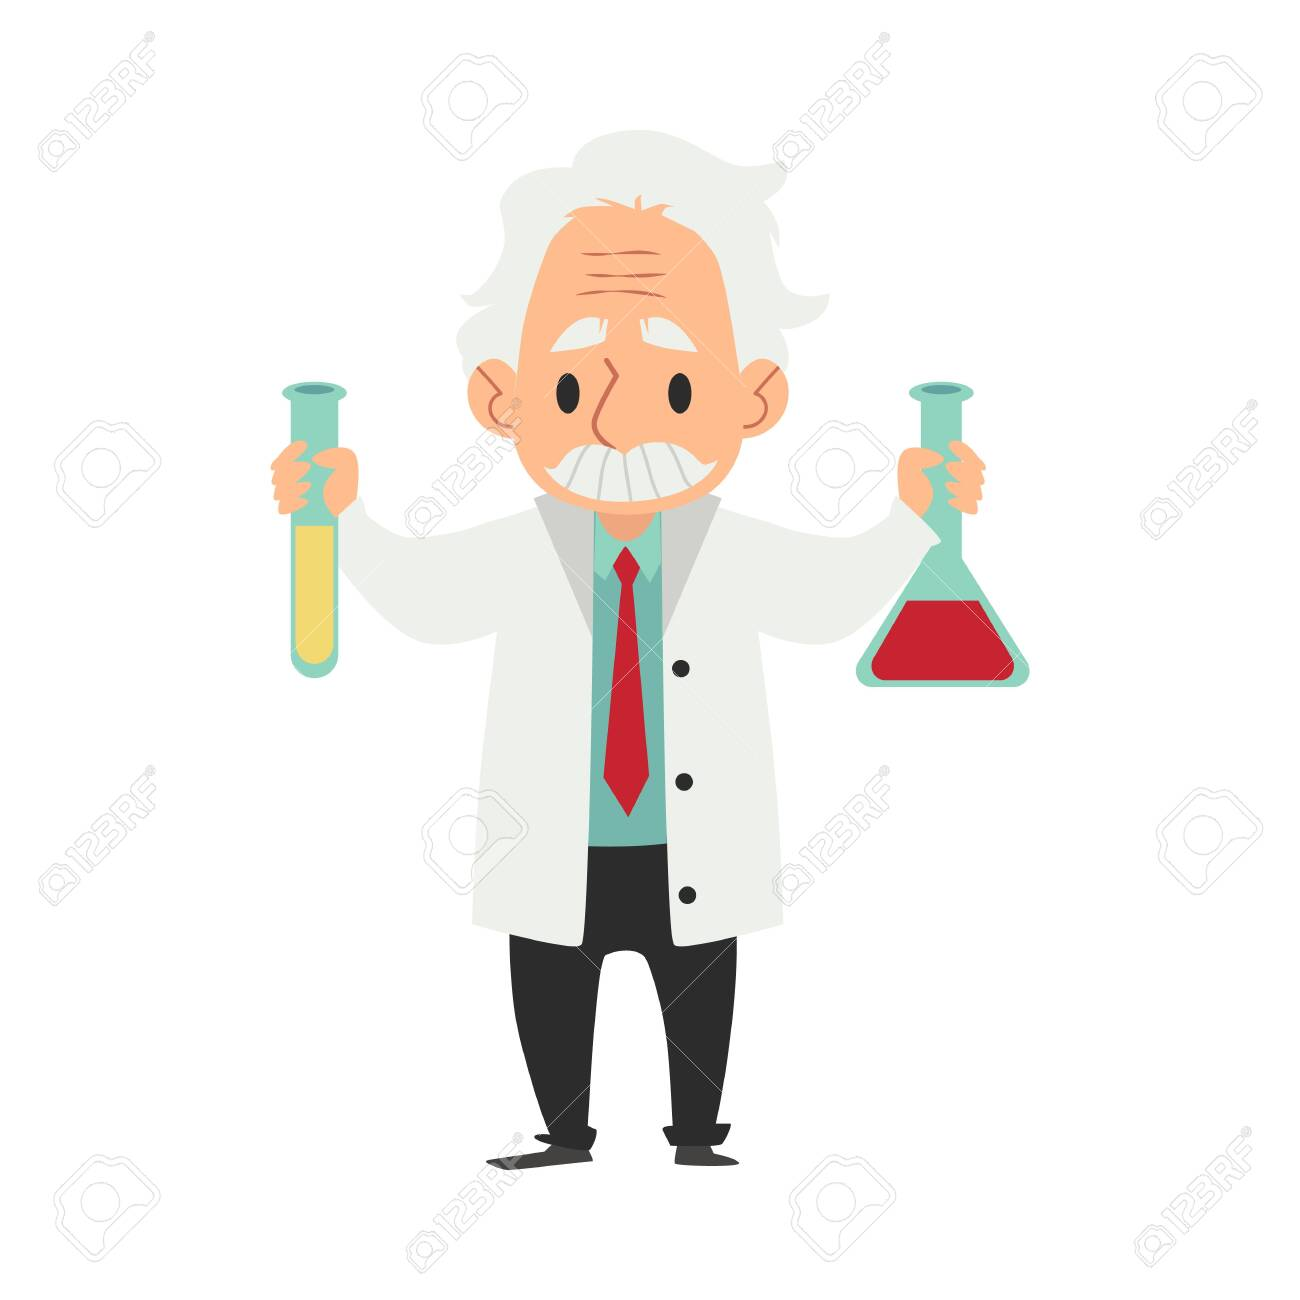 Old scientist in laboratory coat with flask and tube cartoon character flat vector illustration on color background. Professor or chemist experimenting or making discovery. - 128171292